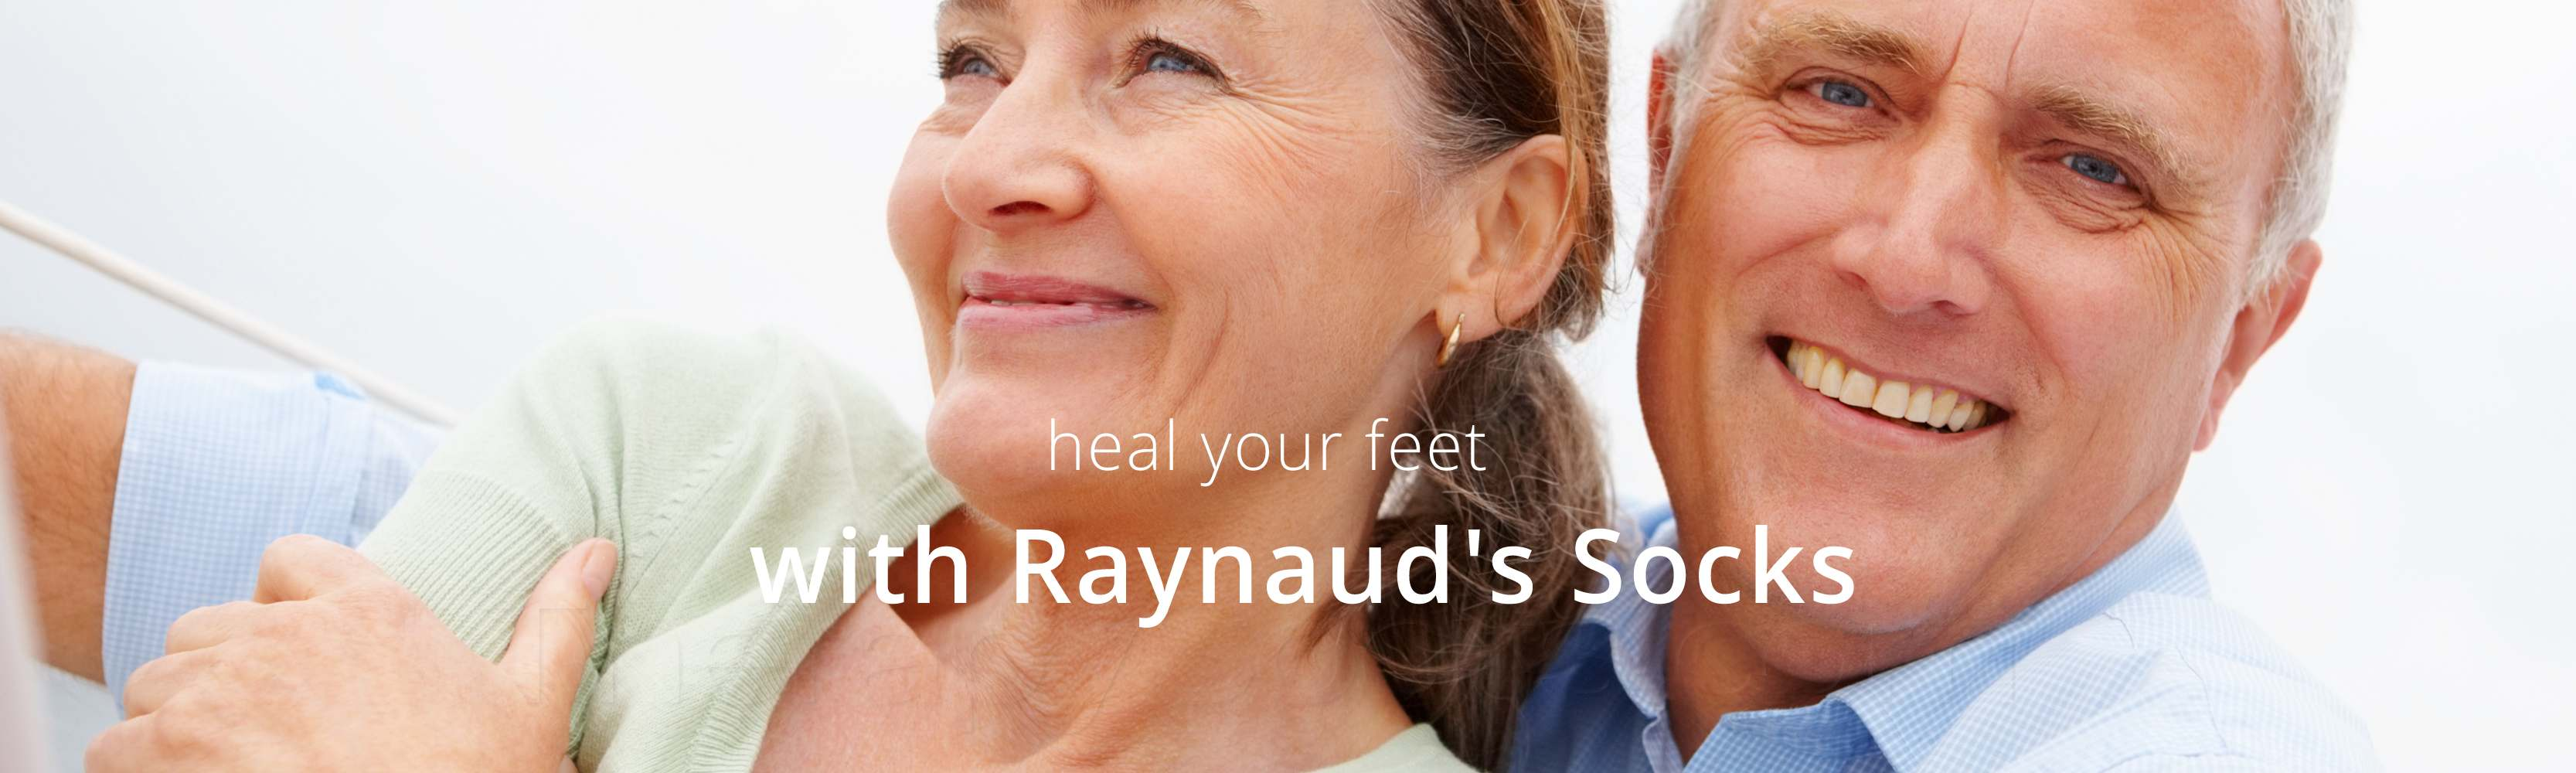 Help Treat Raynaud's Syndrome in your feet with these Far Infrared Socks